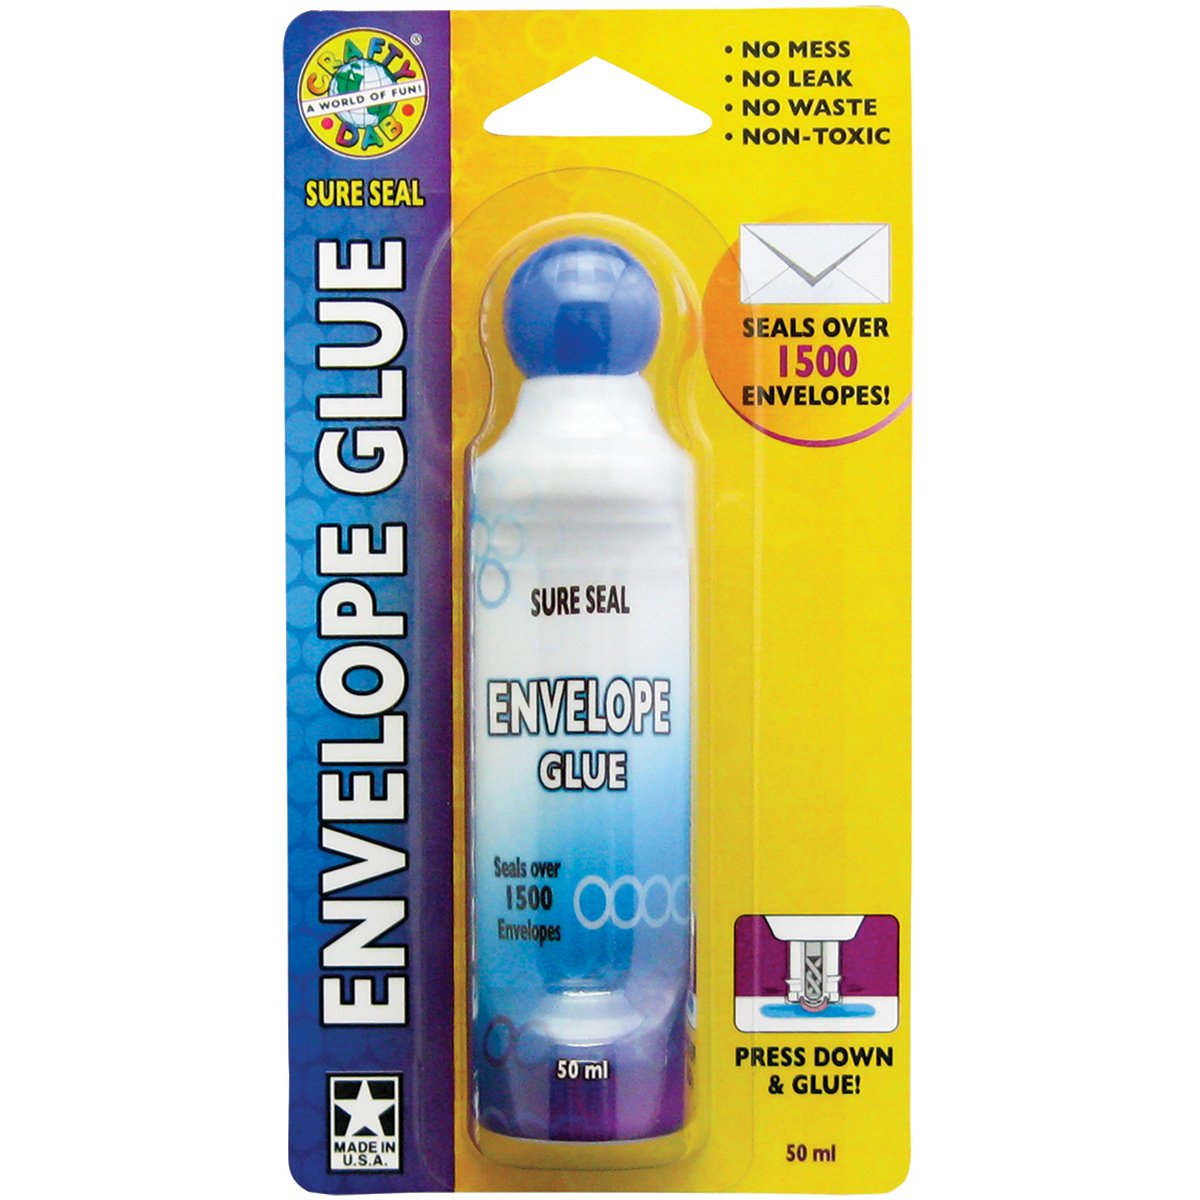 What is envelope glue made of?